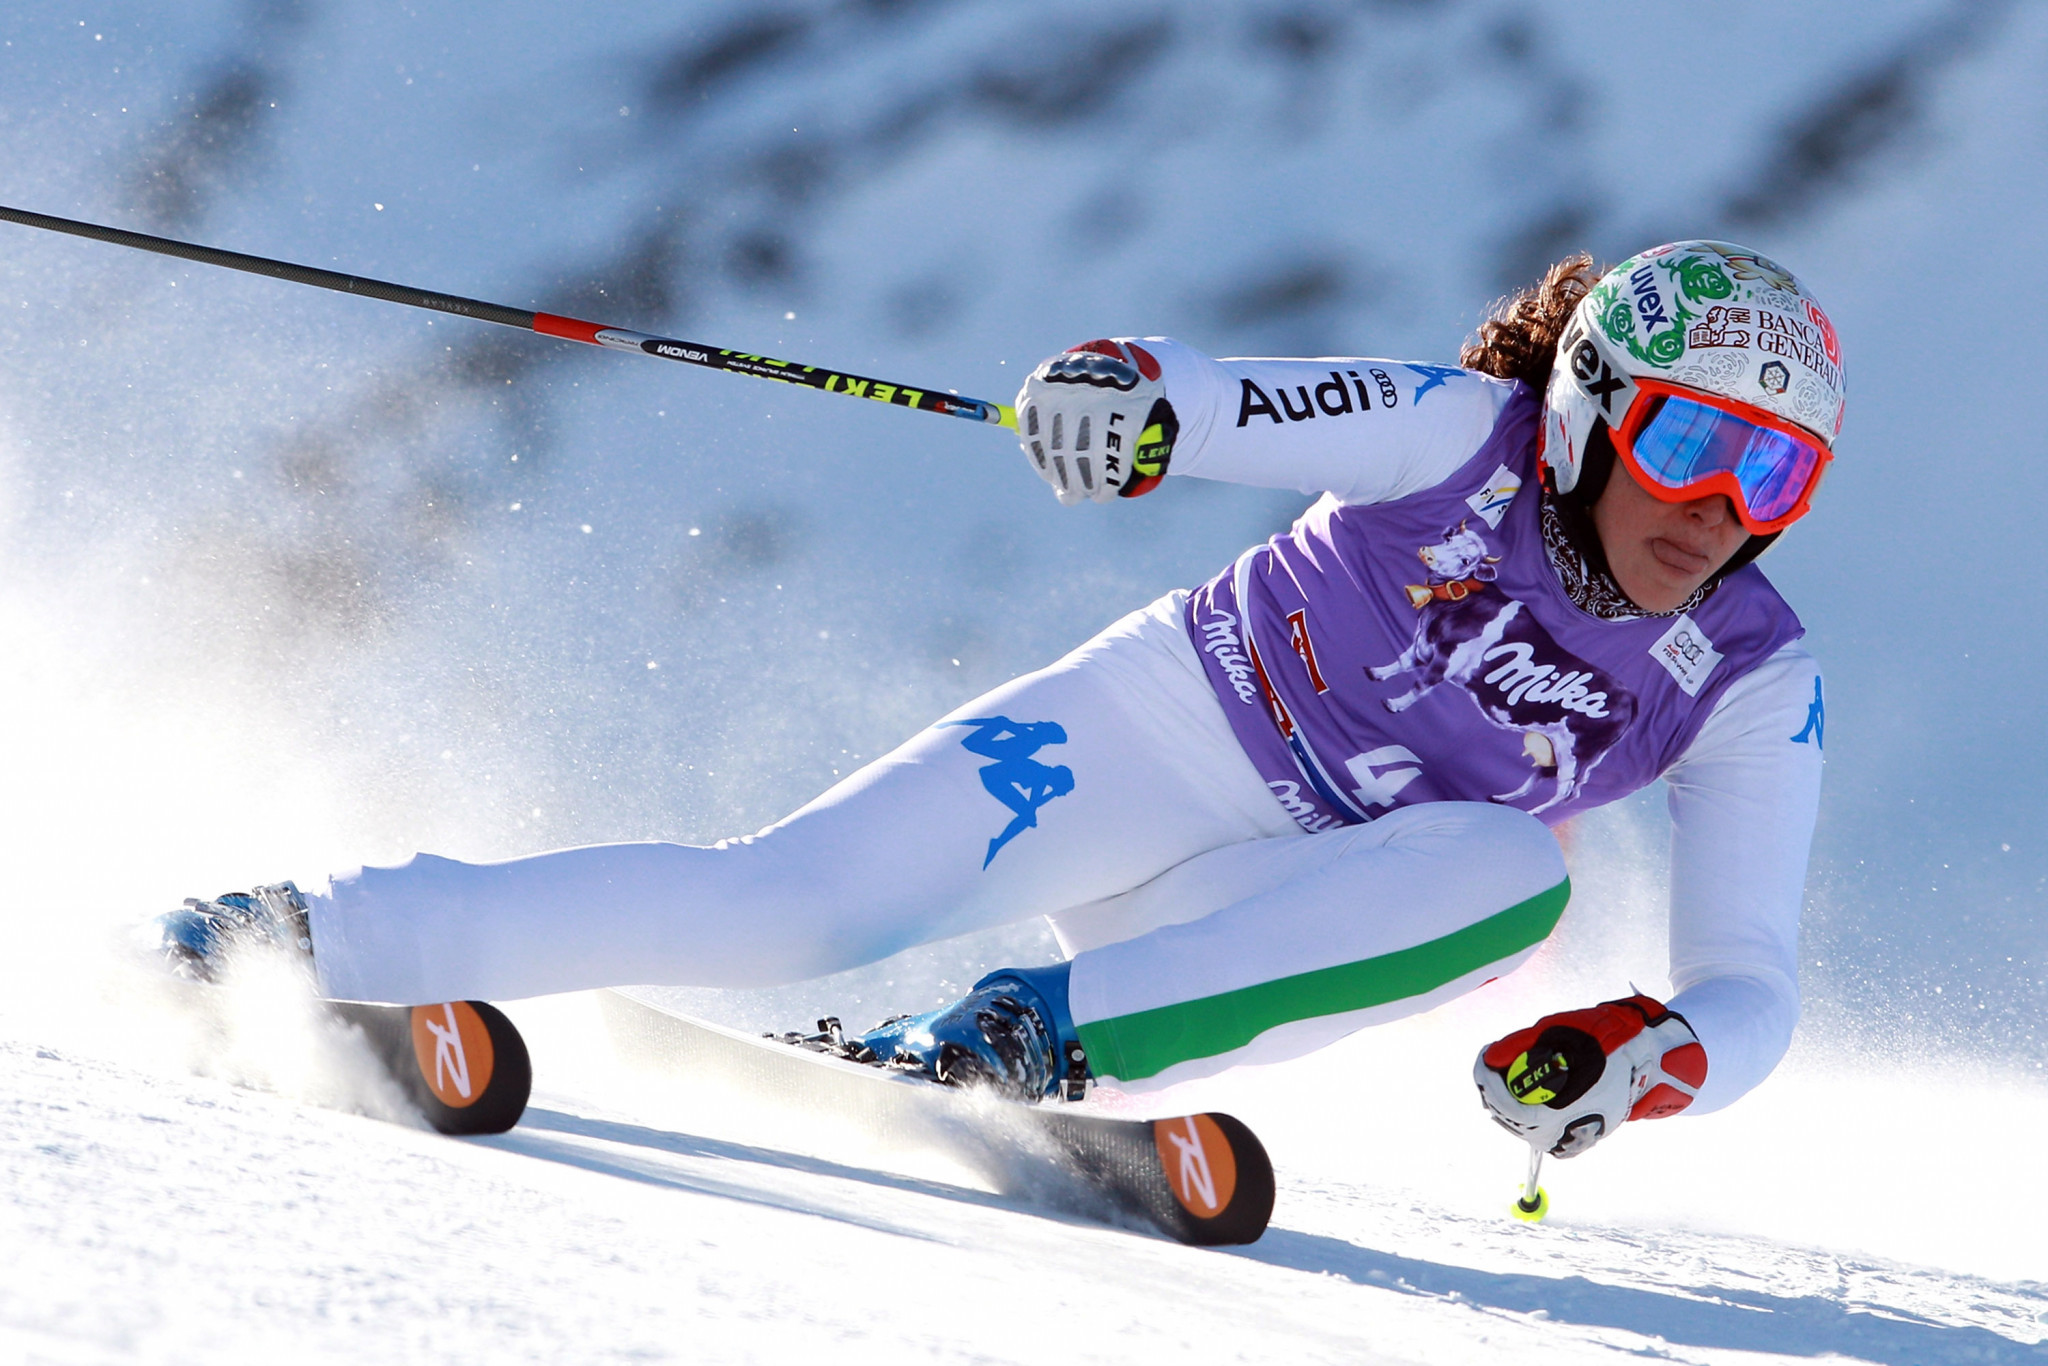 Federica Brignone has been in excellent form going into the World Cup event in Cortina d'Ampezzo ©Getty Images